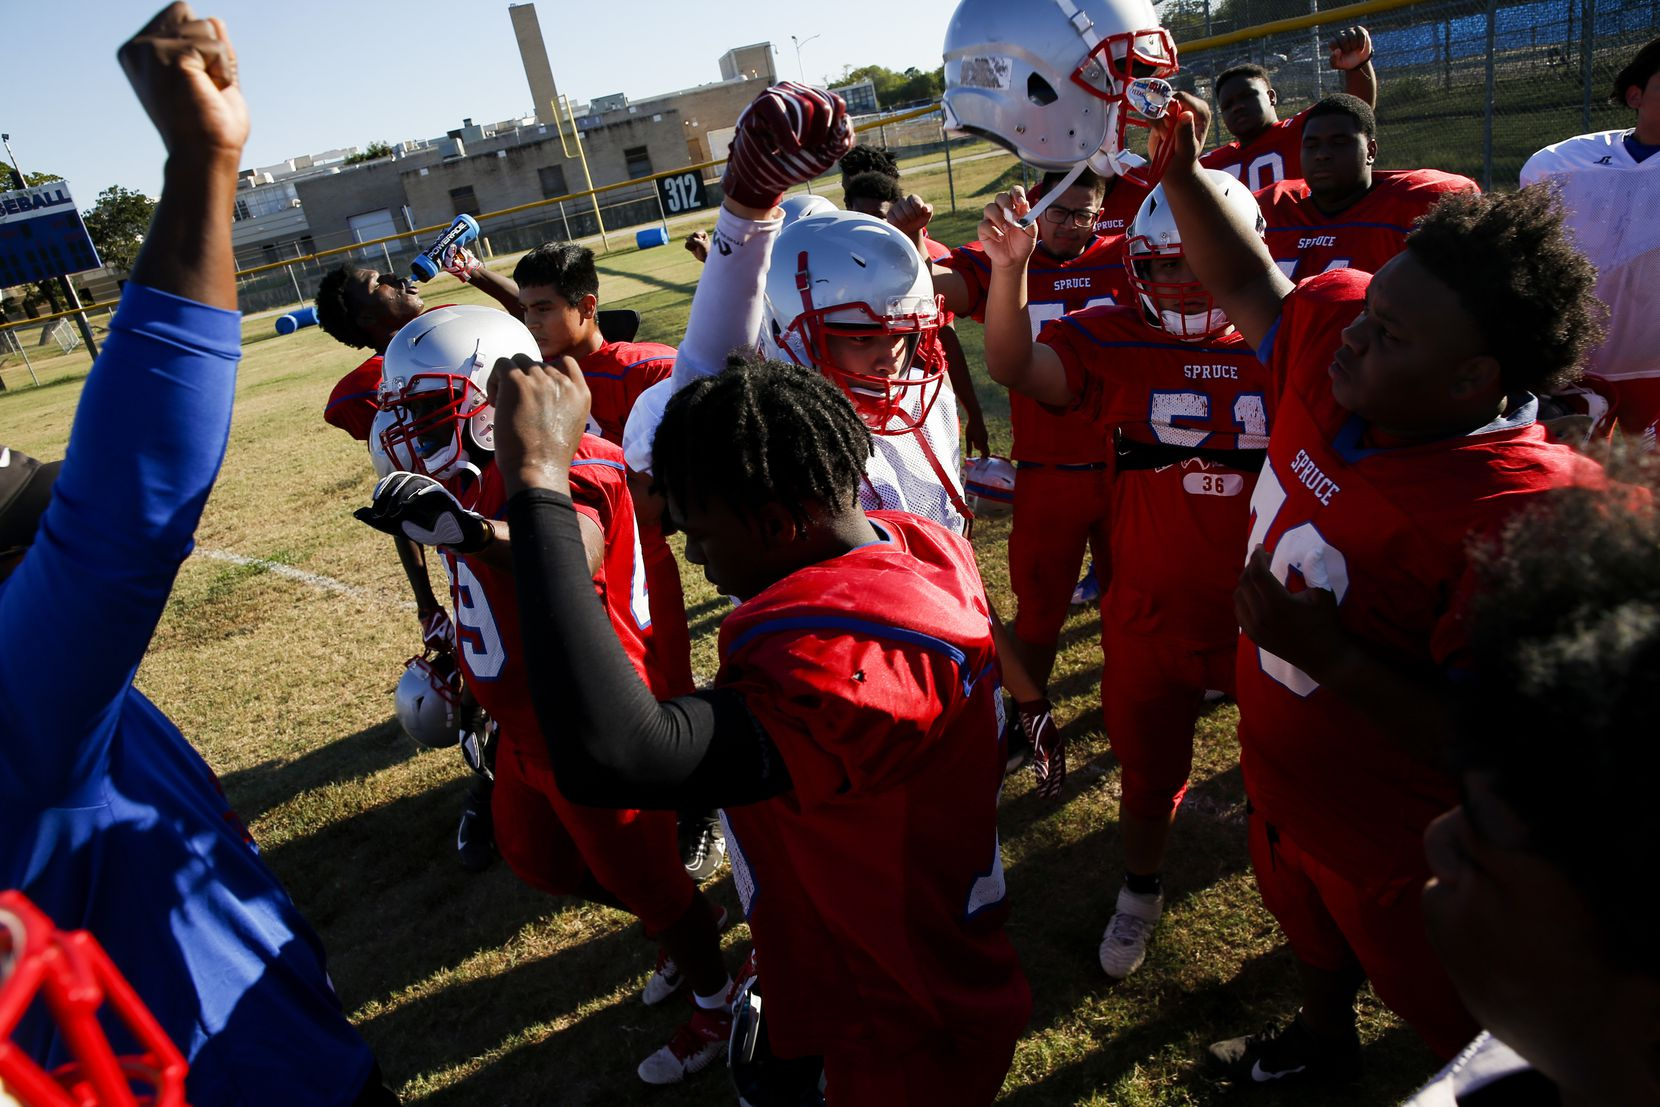 Spruce High School football players break out of huddle during football practice on Wednesday, Sept. 22, 2021, at H. Grady Spruce High School in Dallas. (Juan Figueroa/The Dallas Morning News)